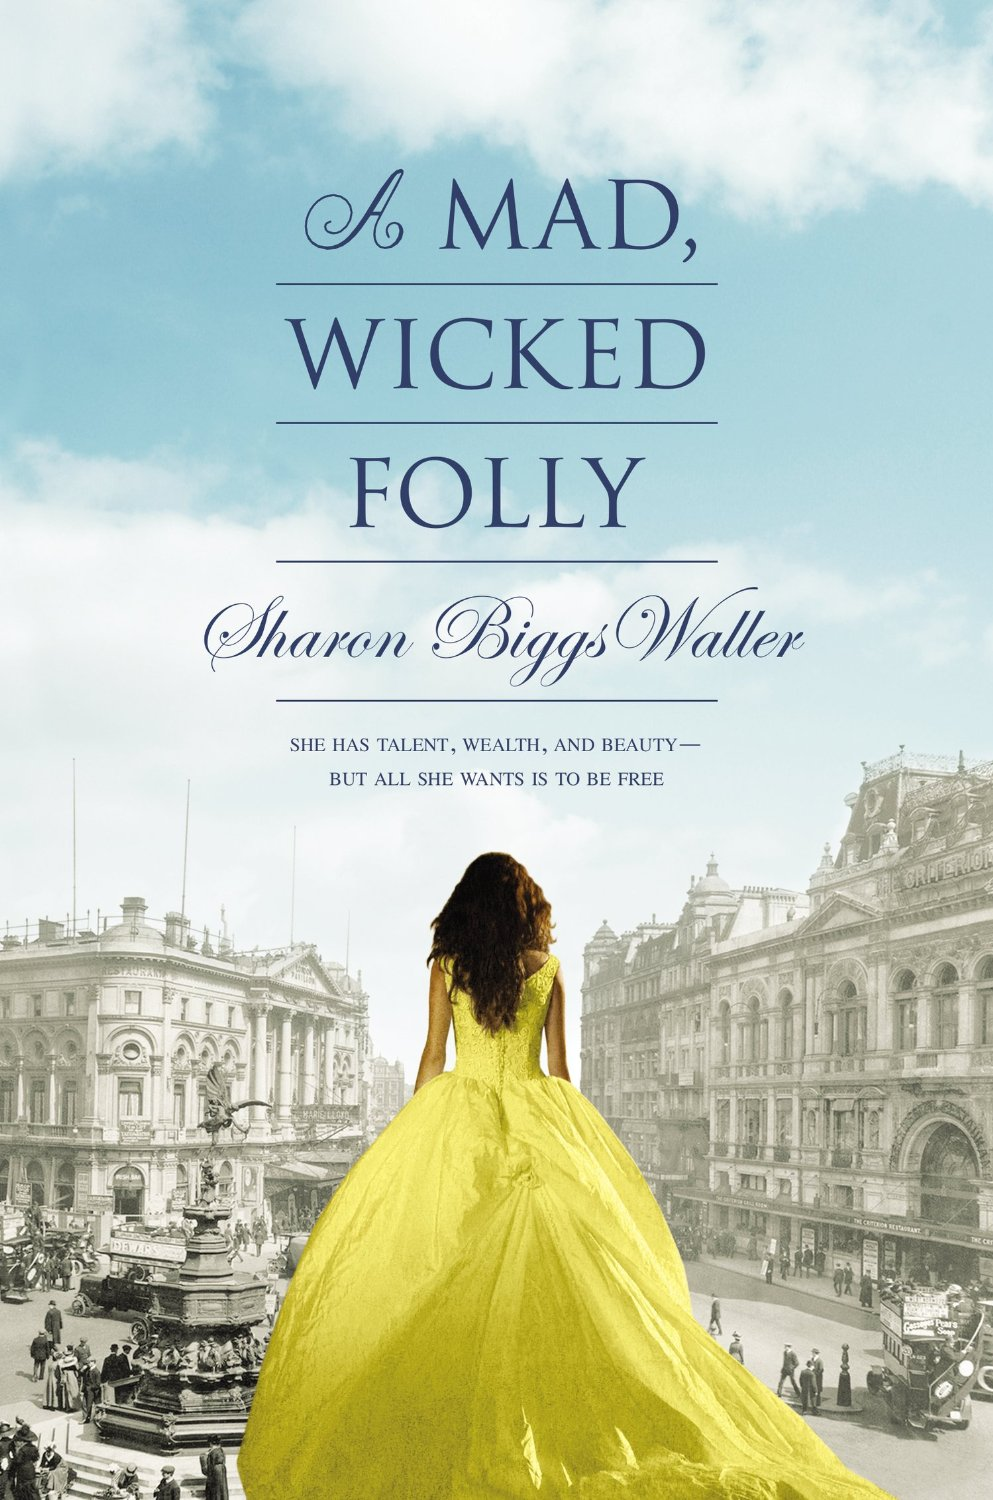 A Mad, Wicked Folly by Sharon Biggs Waller Amazon | Goodreads